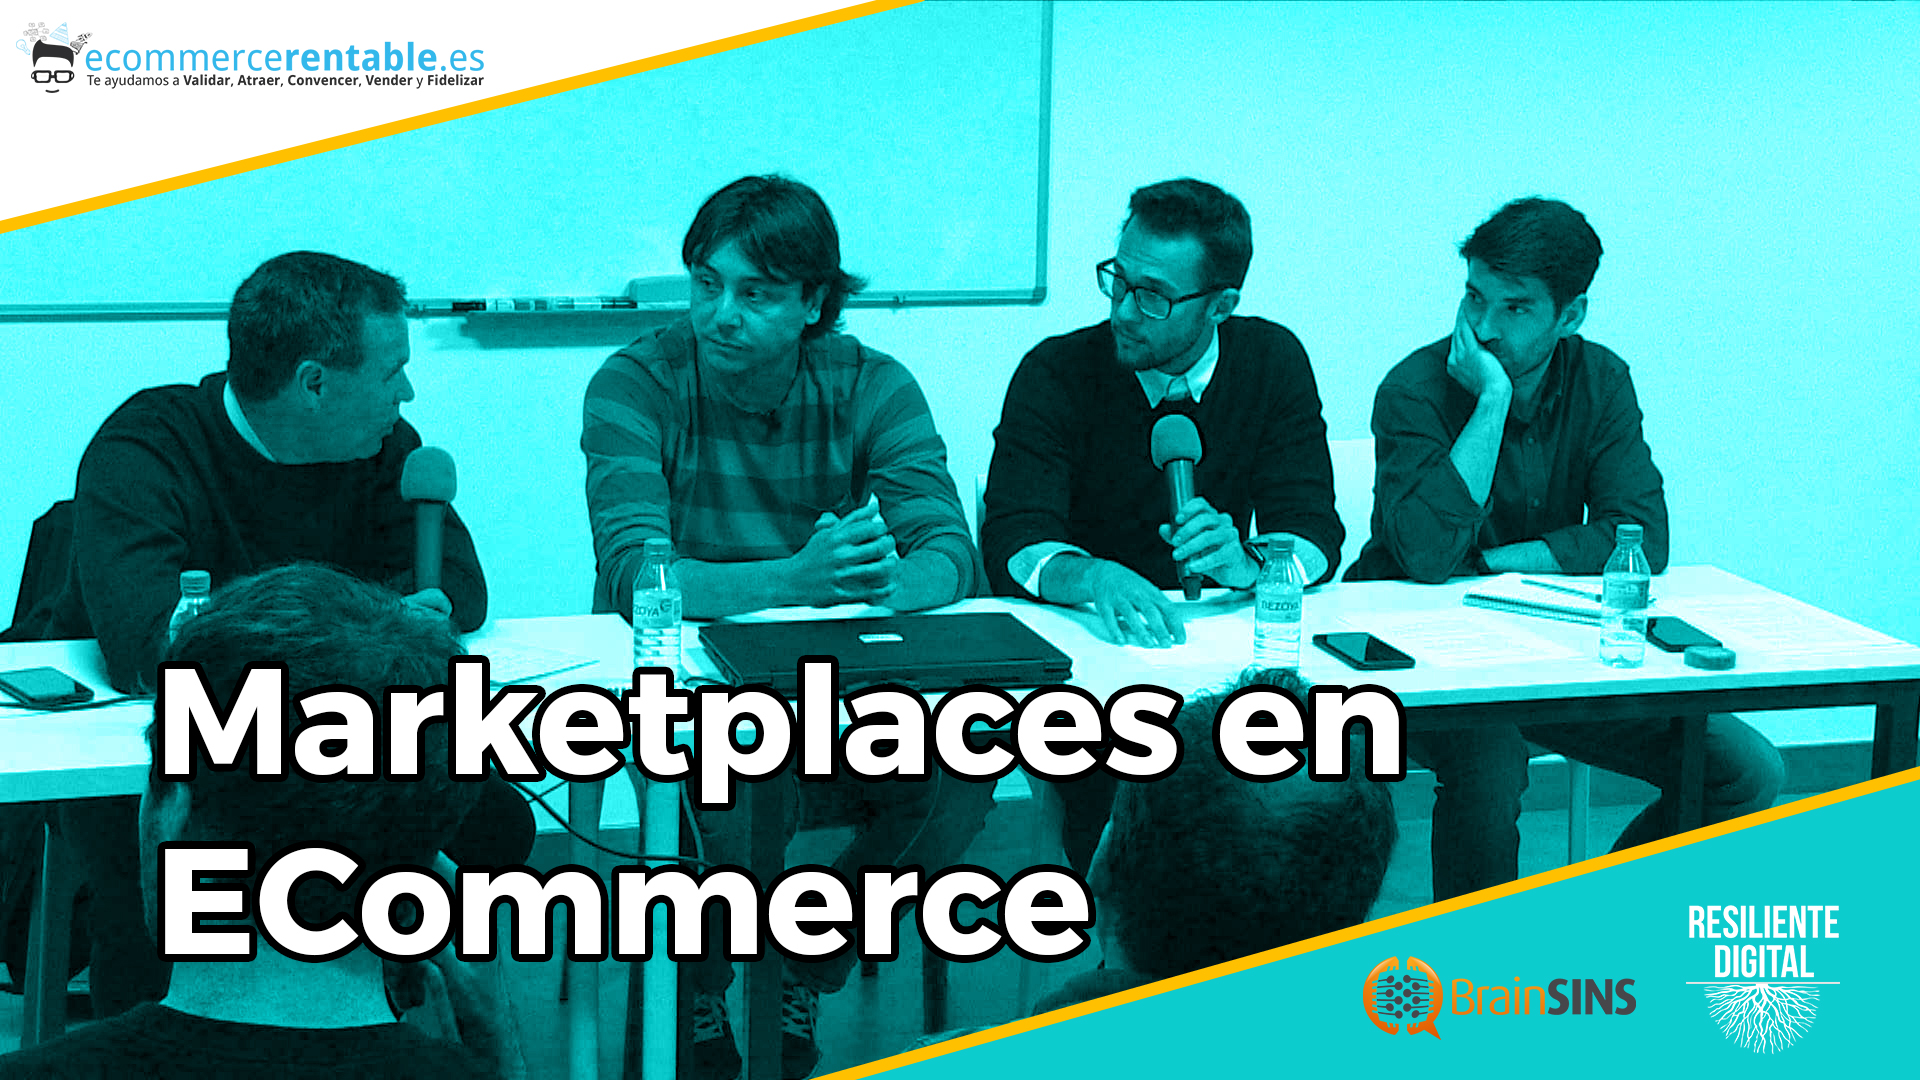 Marketplaces en ECommerce